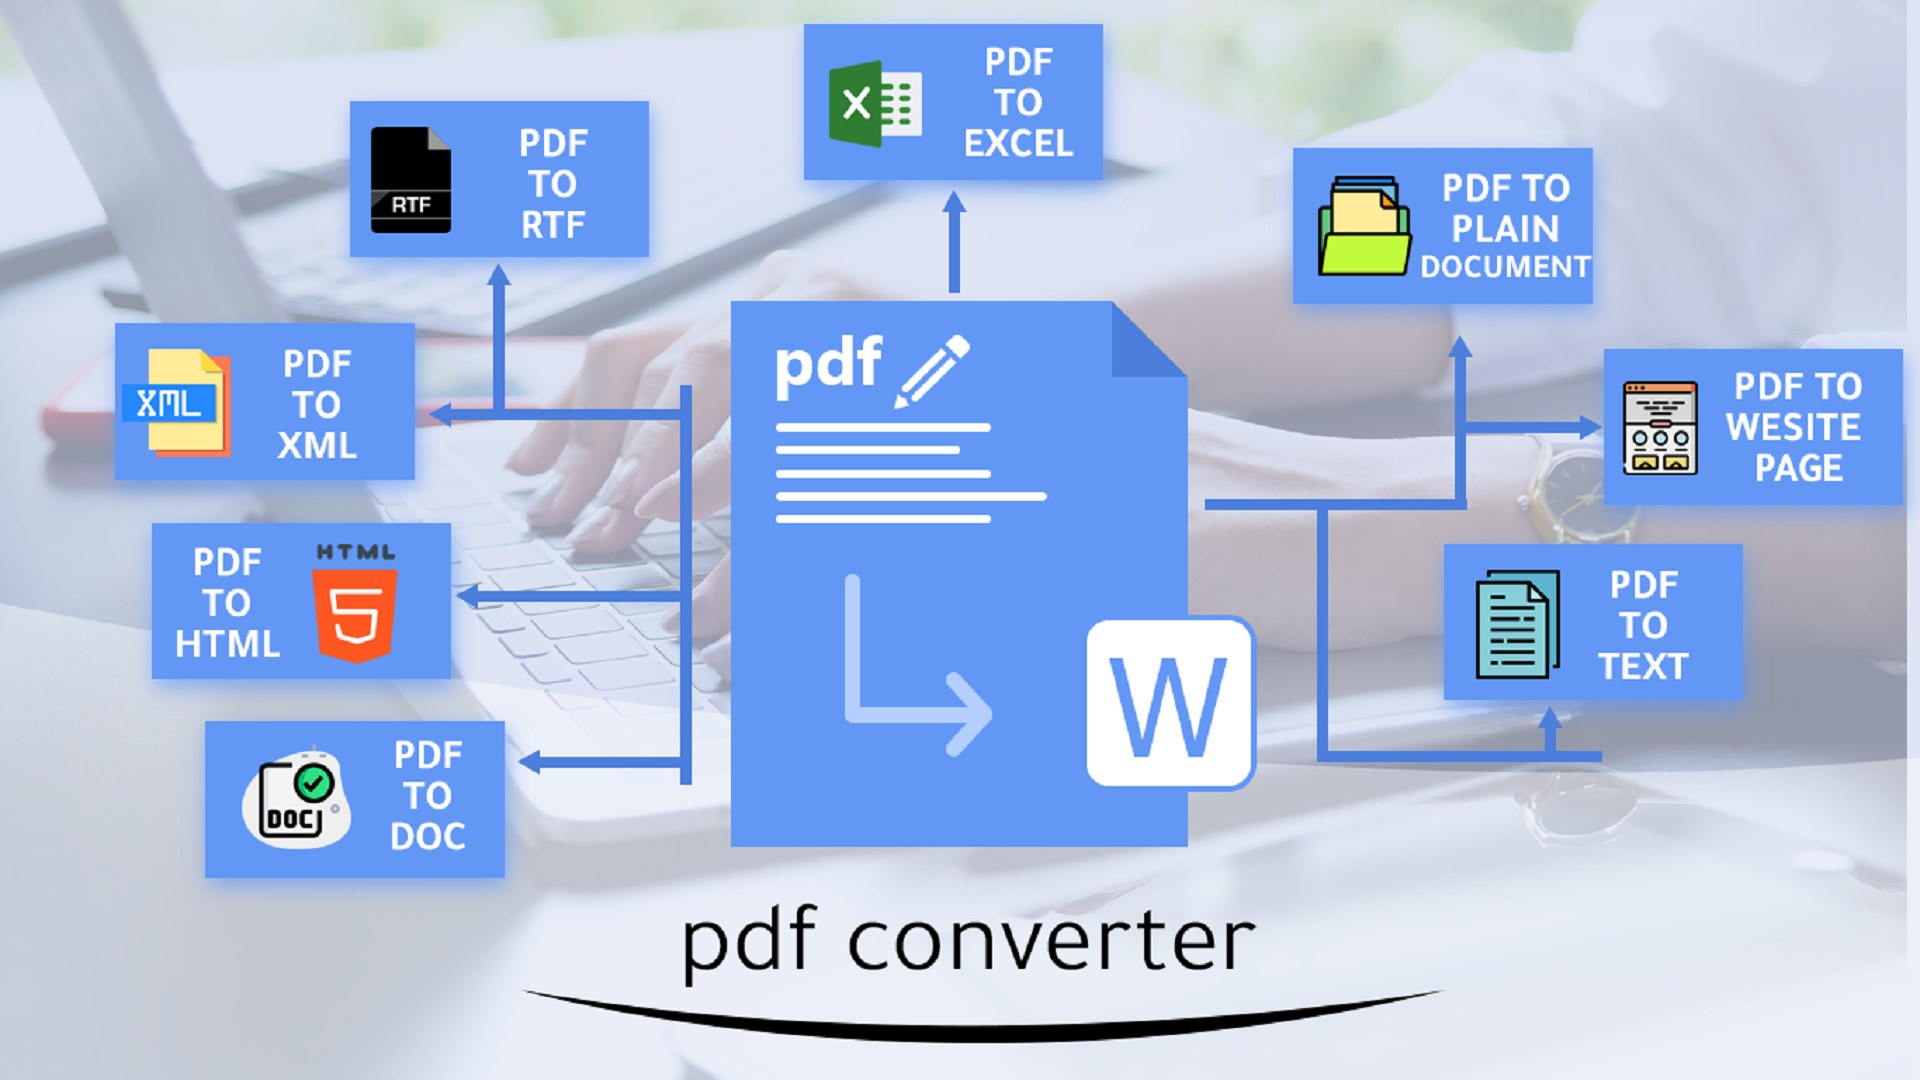 Buy Pdf Converter Editor For Office Pdf To Word Docx Xls Pptx Html Txt Word To Pdf Images To Pdf Excel To Pdf Microsoft Store